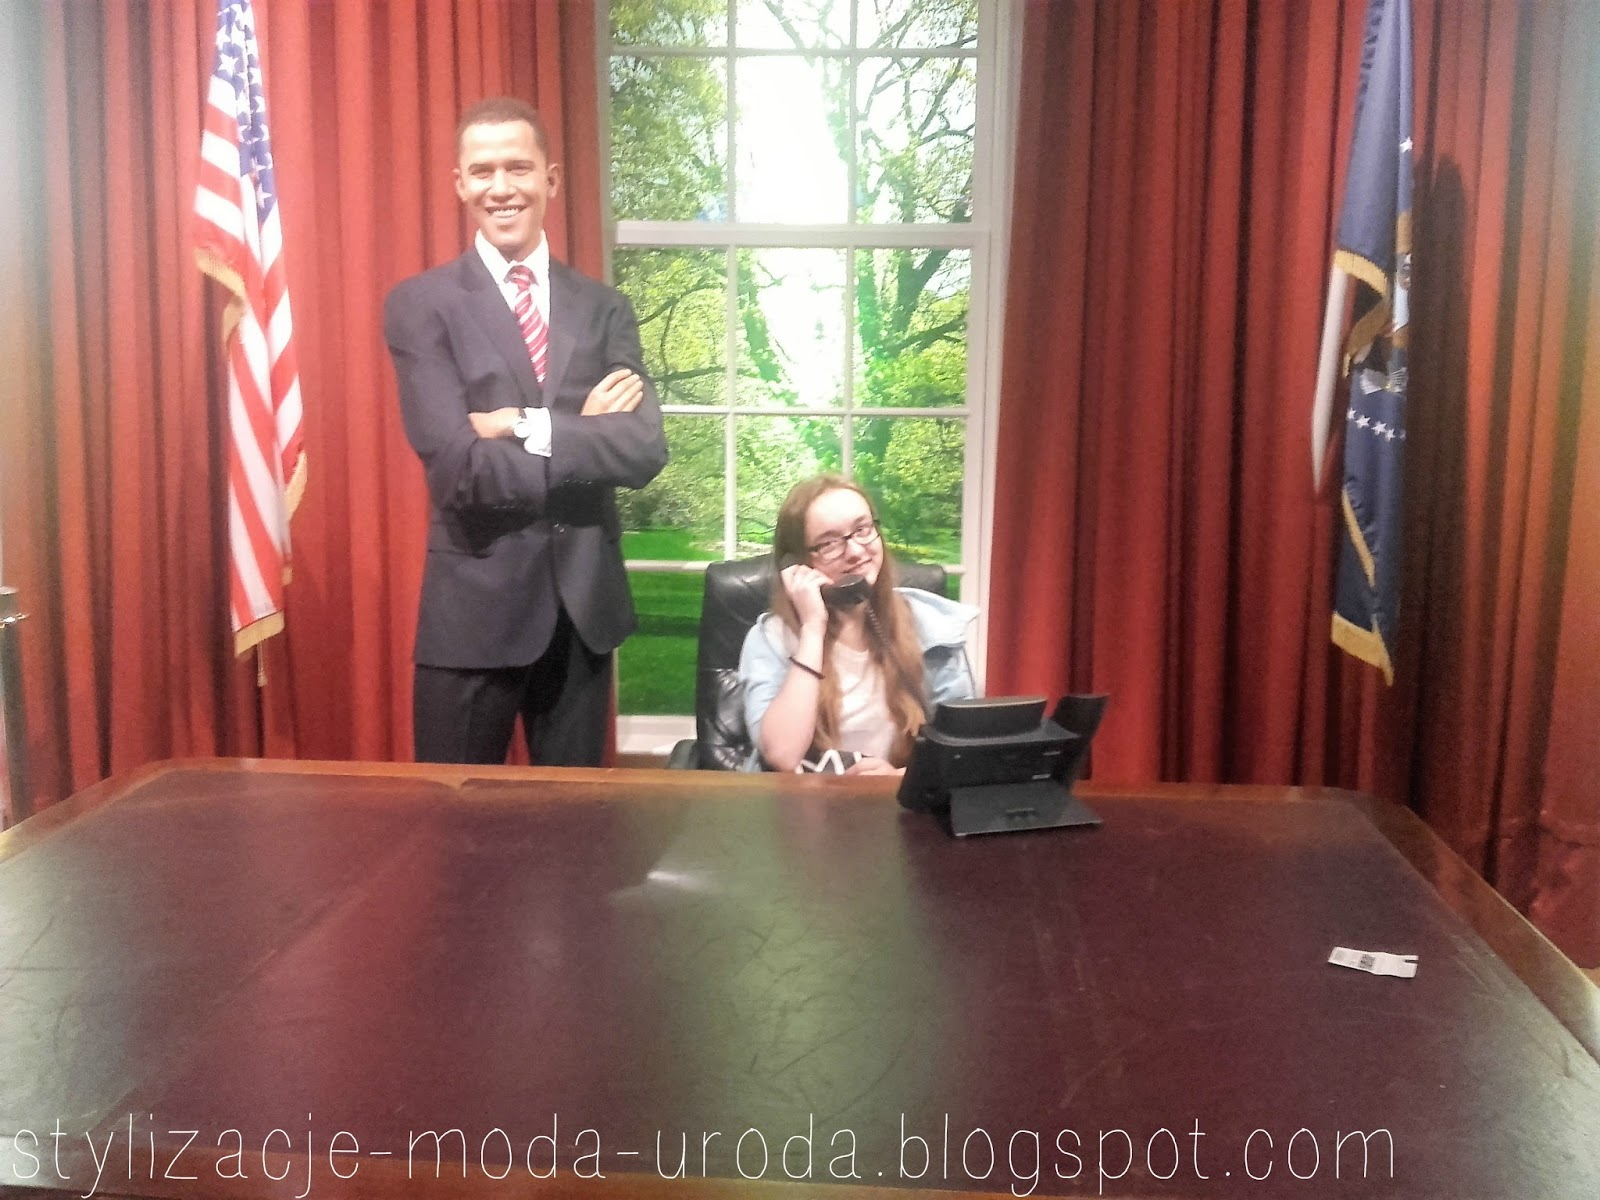 Madame Tussaud's Barack Obama